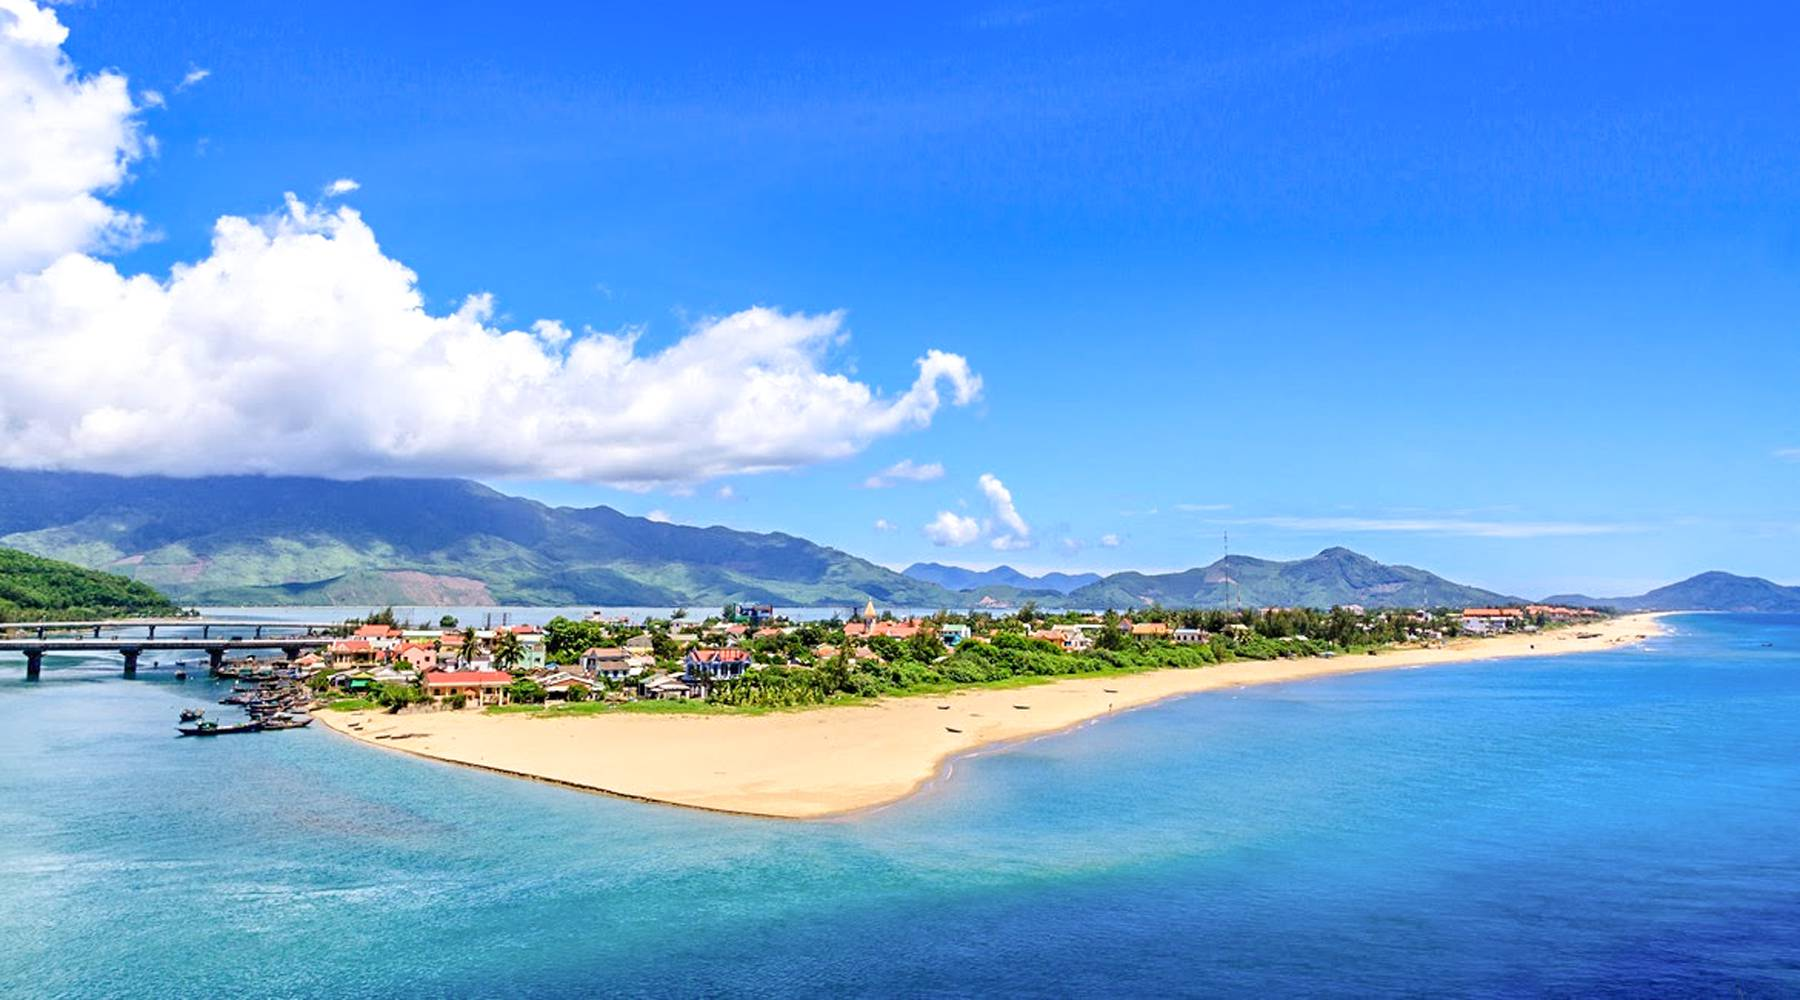 5 Best Ways To Travel From Hue to Hoi An